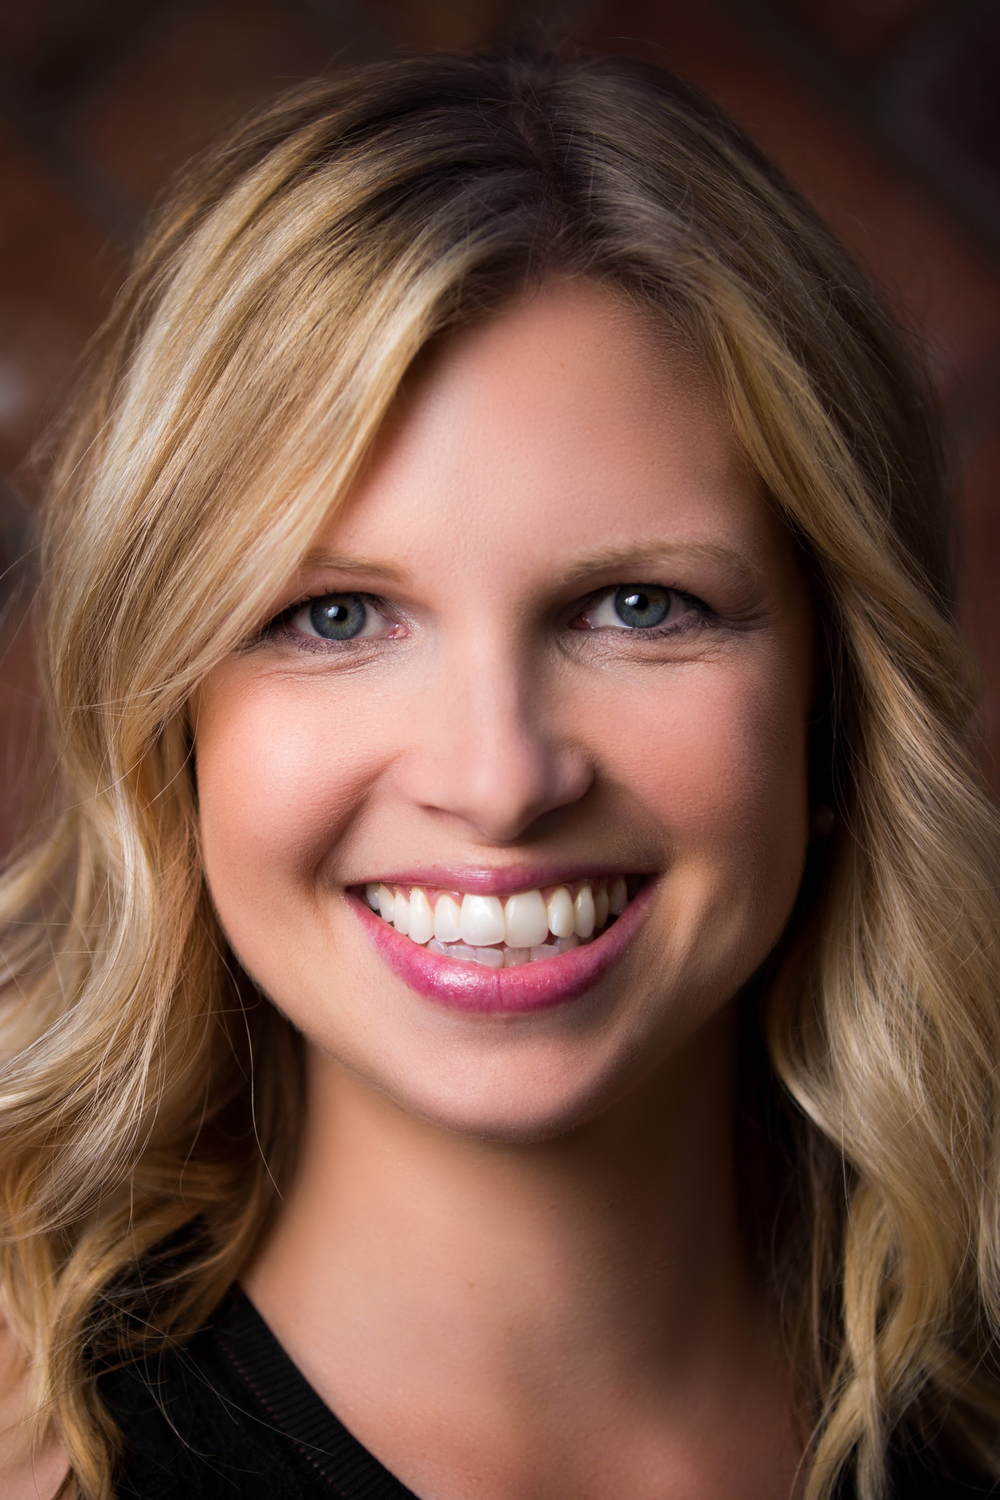 Anna Joined Salon Bellissima After Graduating From The Renowned Gene Juarez Academy In Seattle 2009 Earning A BA Communications Western